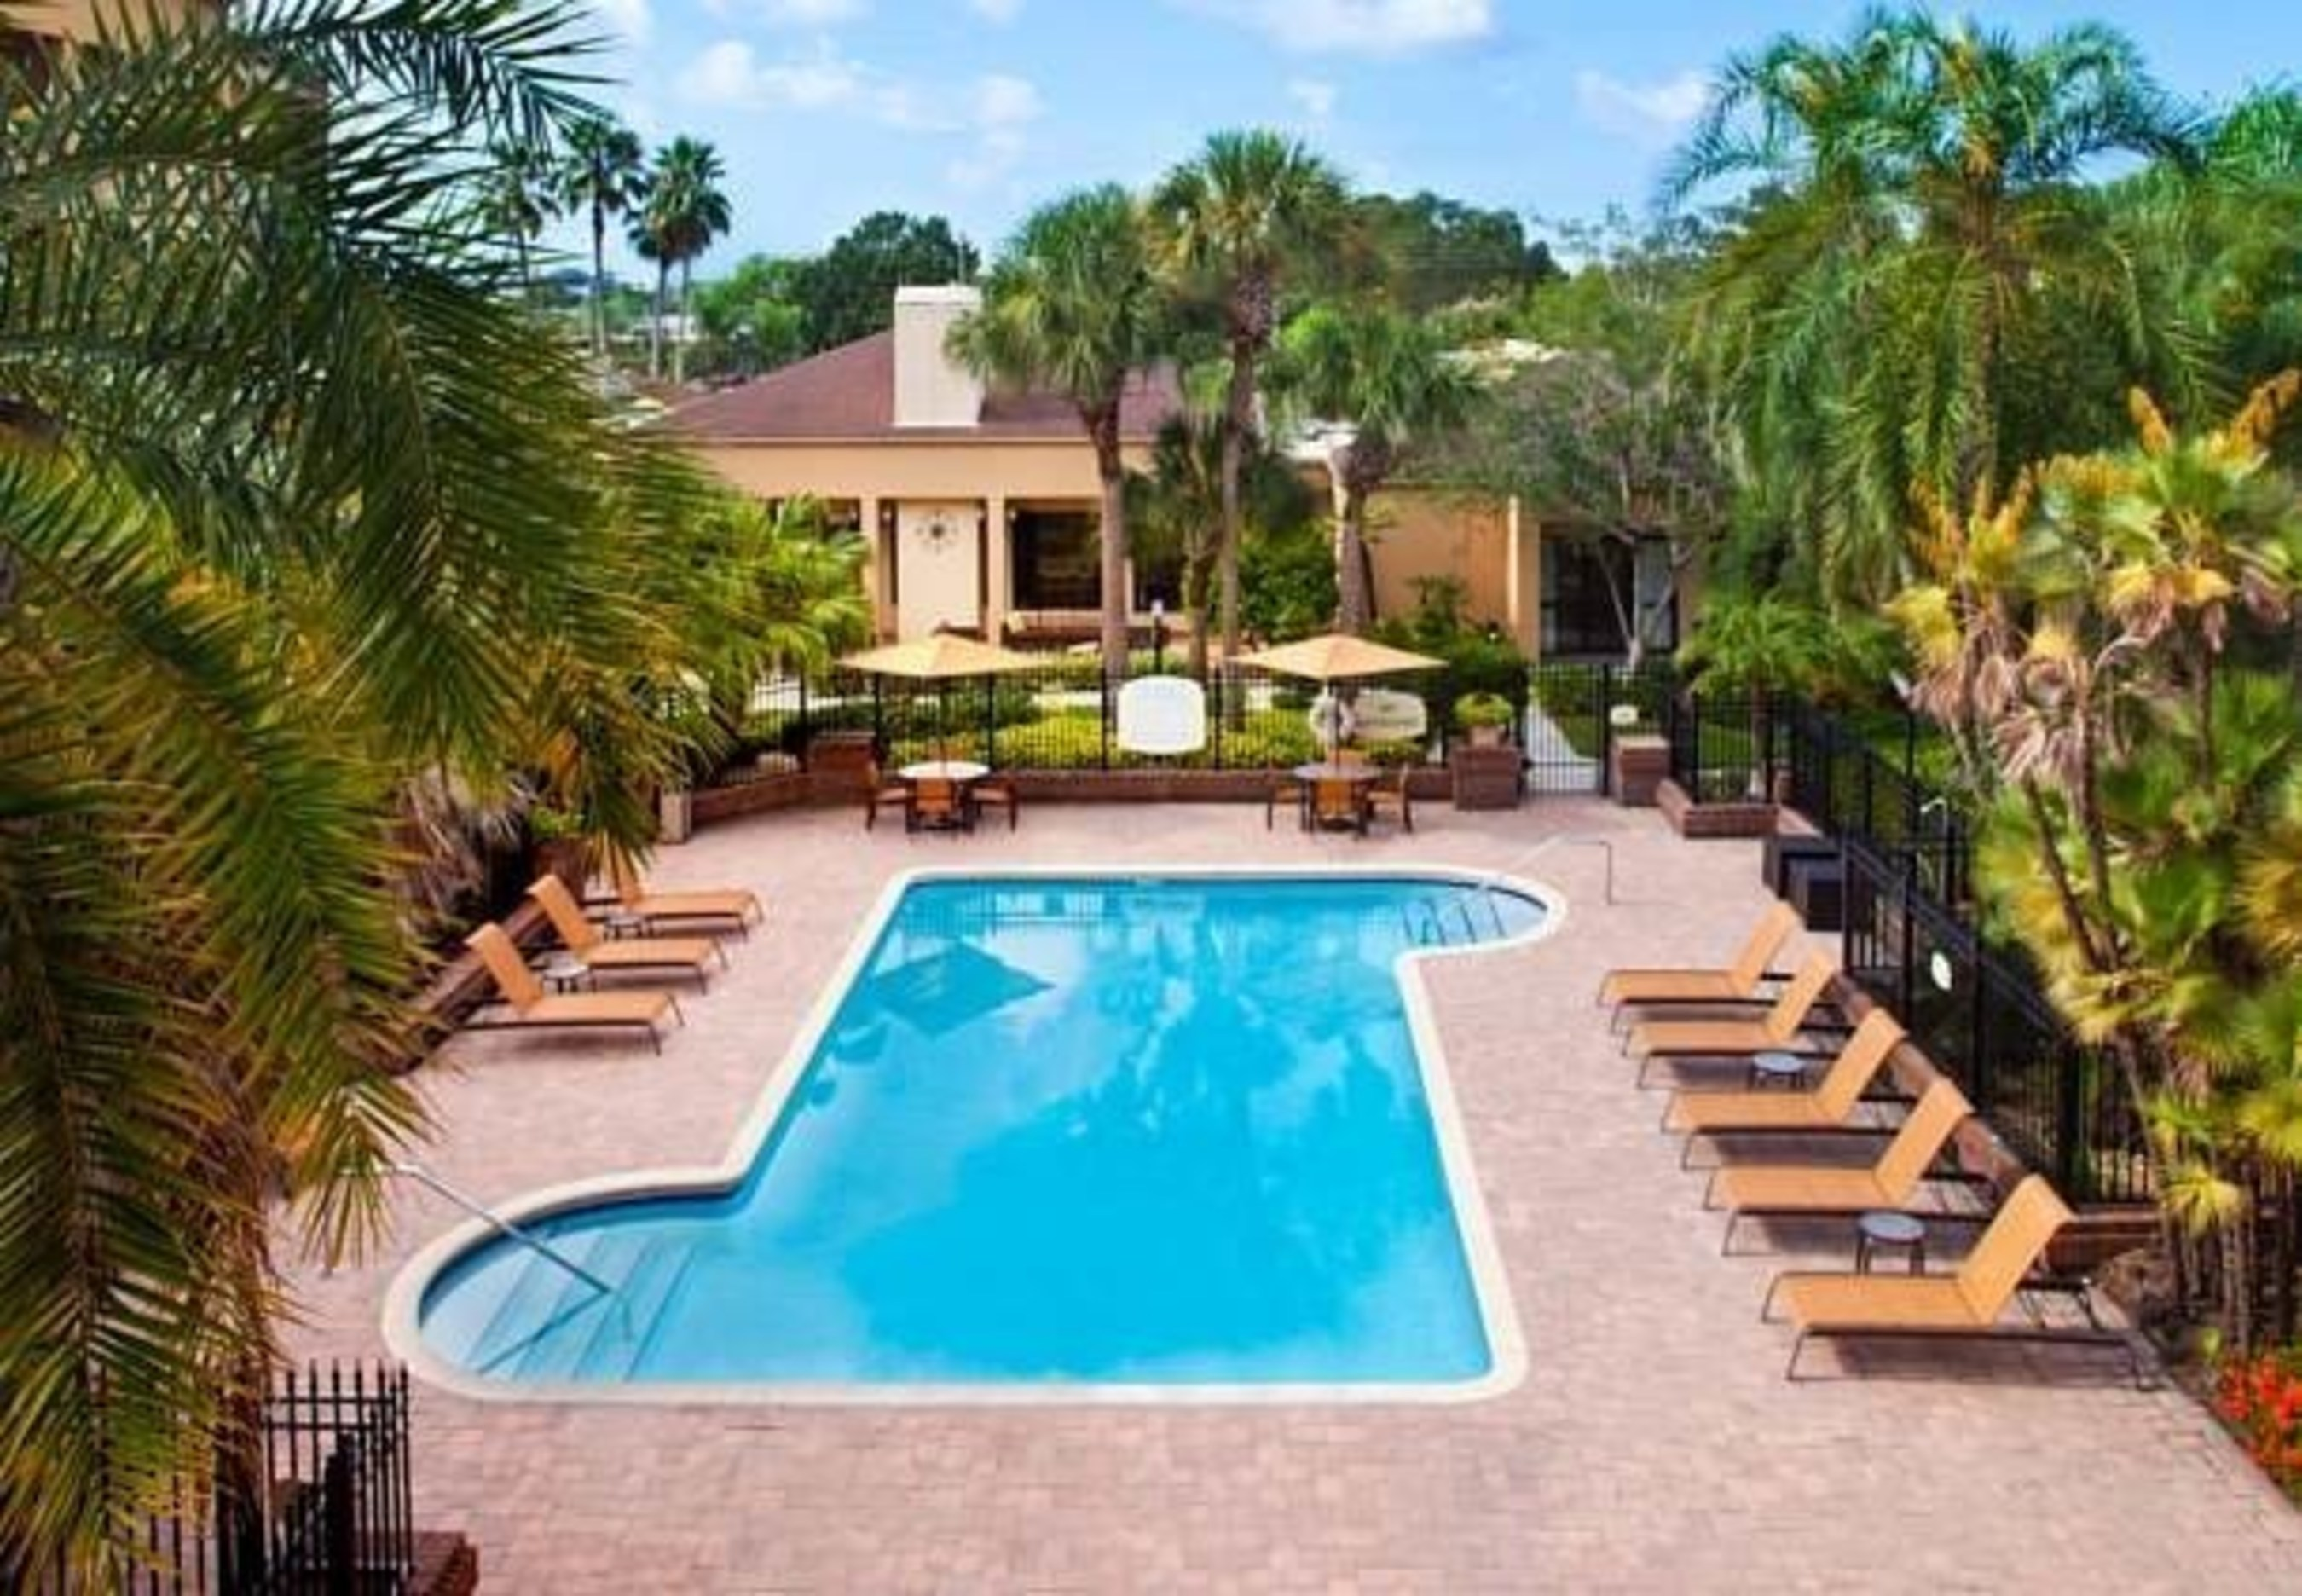 Courtyard Tampa Westshore/Airport invites football fans to book a stay during the annual Outback Bowl, scheduled for Jan. 1, 2016. For information, visit www.TampaWestshoreCourtyard.com or call 1-813-874-0555.